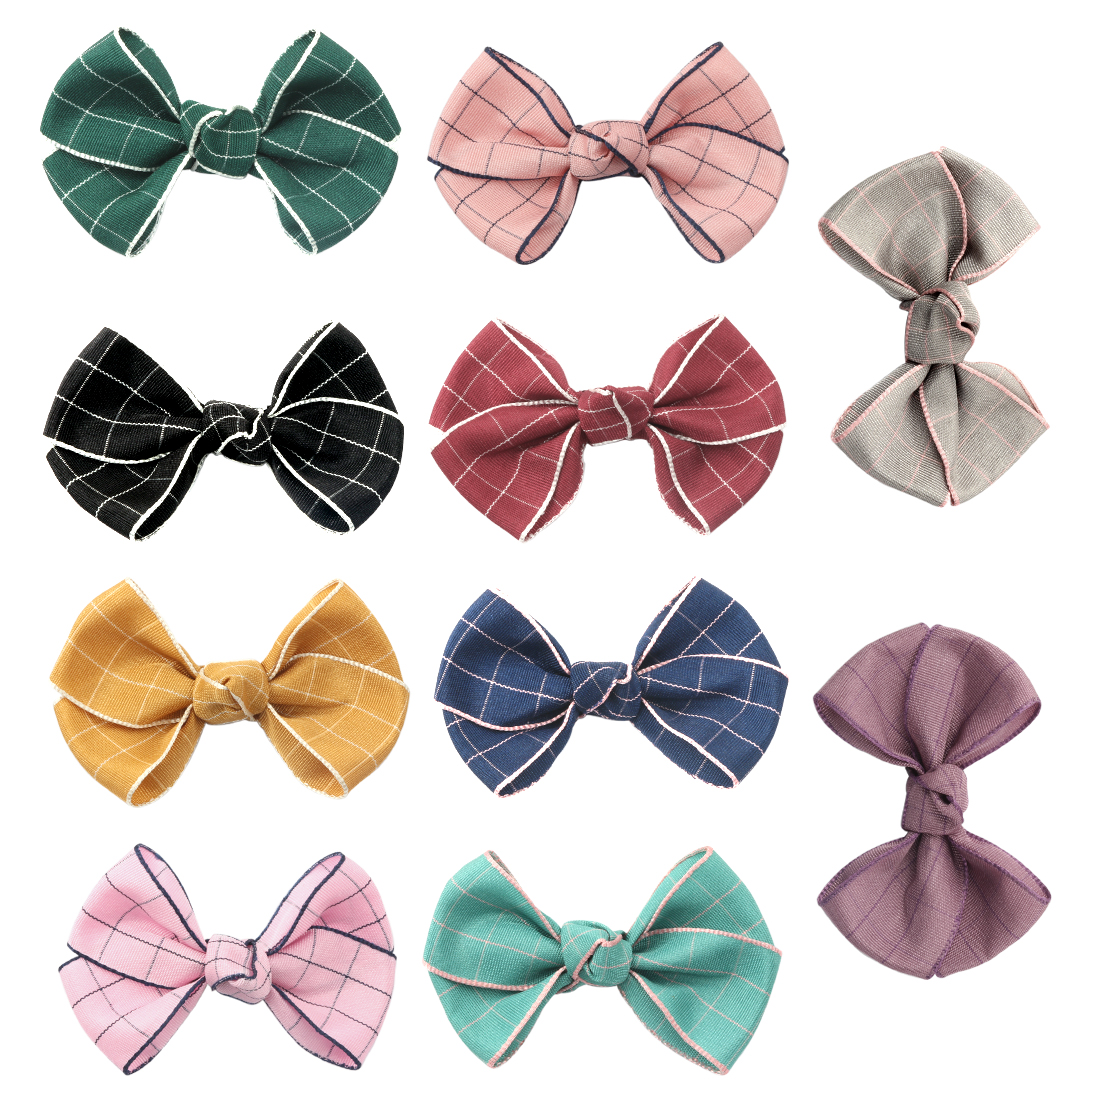 Have An Inquiring Mind 1 Pc Children Hairpins Mini 2.5inch Bow Clip Barrettes Girls Hair Clips Plaid Vintage Grid Knotted Cross Print Hairclips Fine Craftsmanship